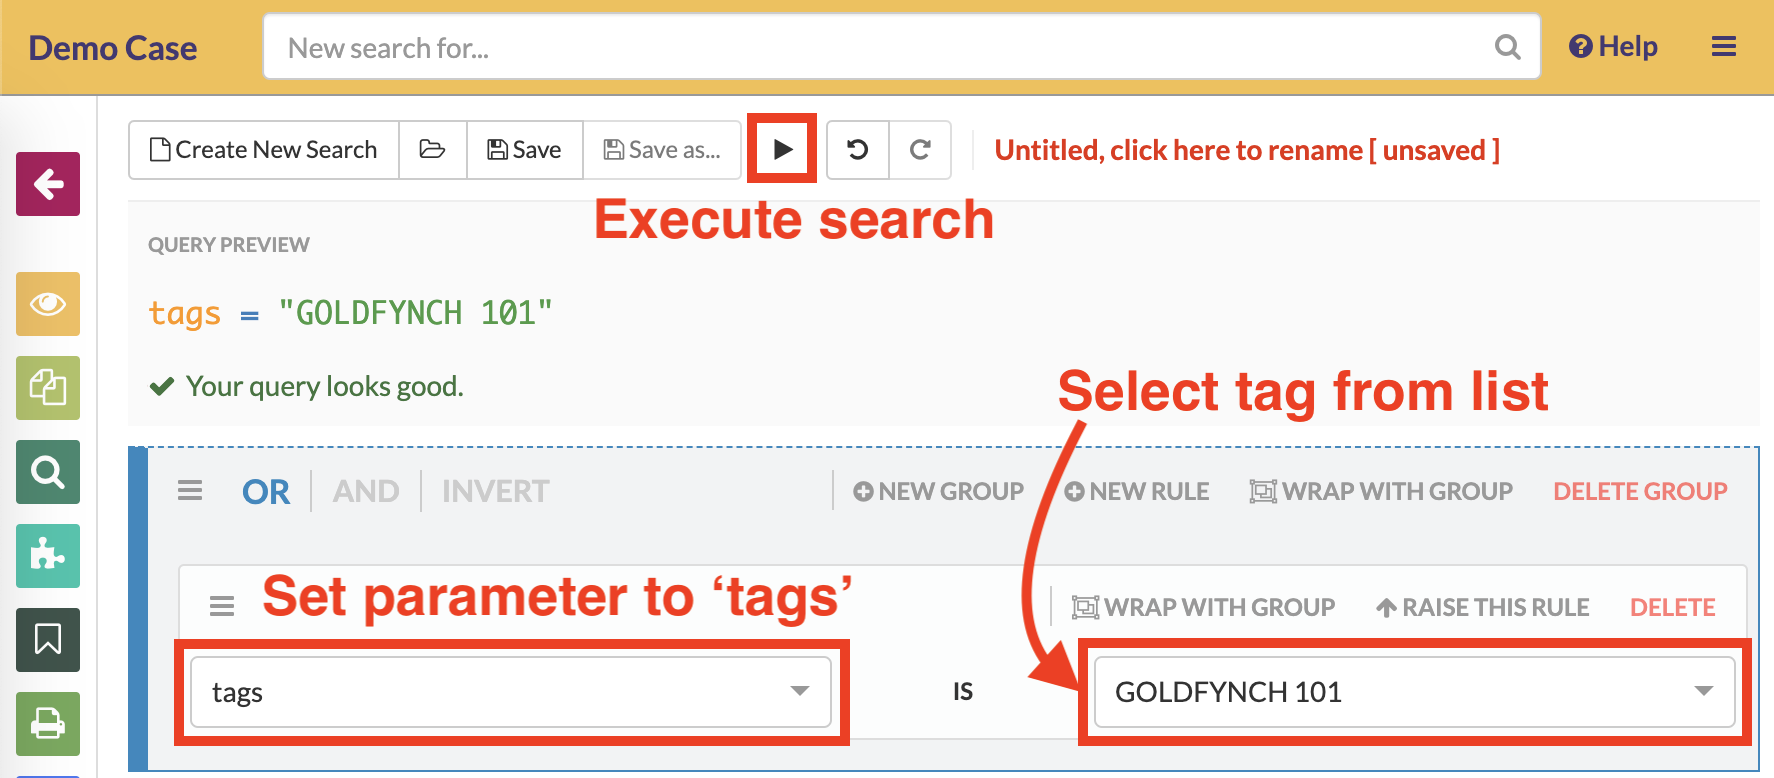 Select a tag to search for